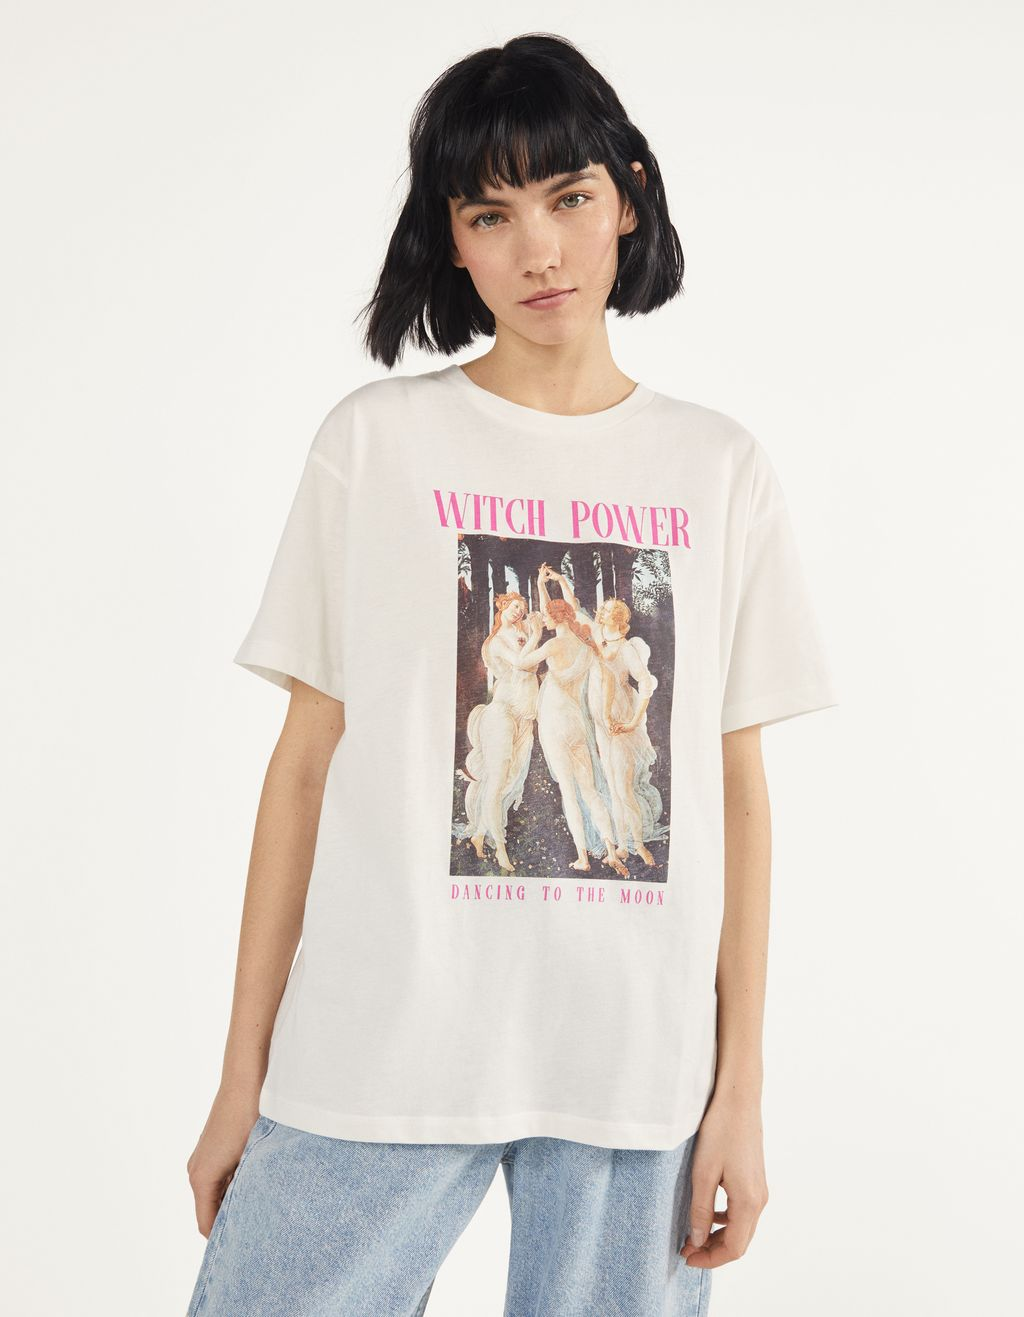 Botticelli T-shirt